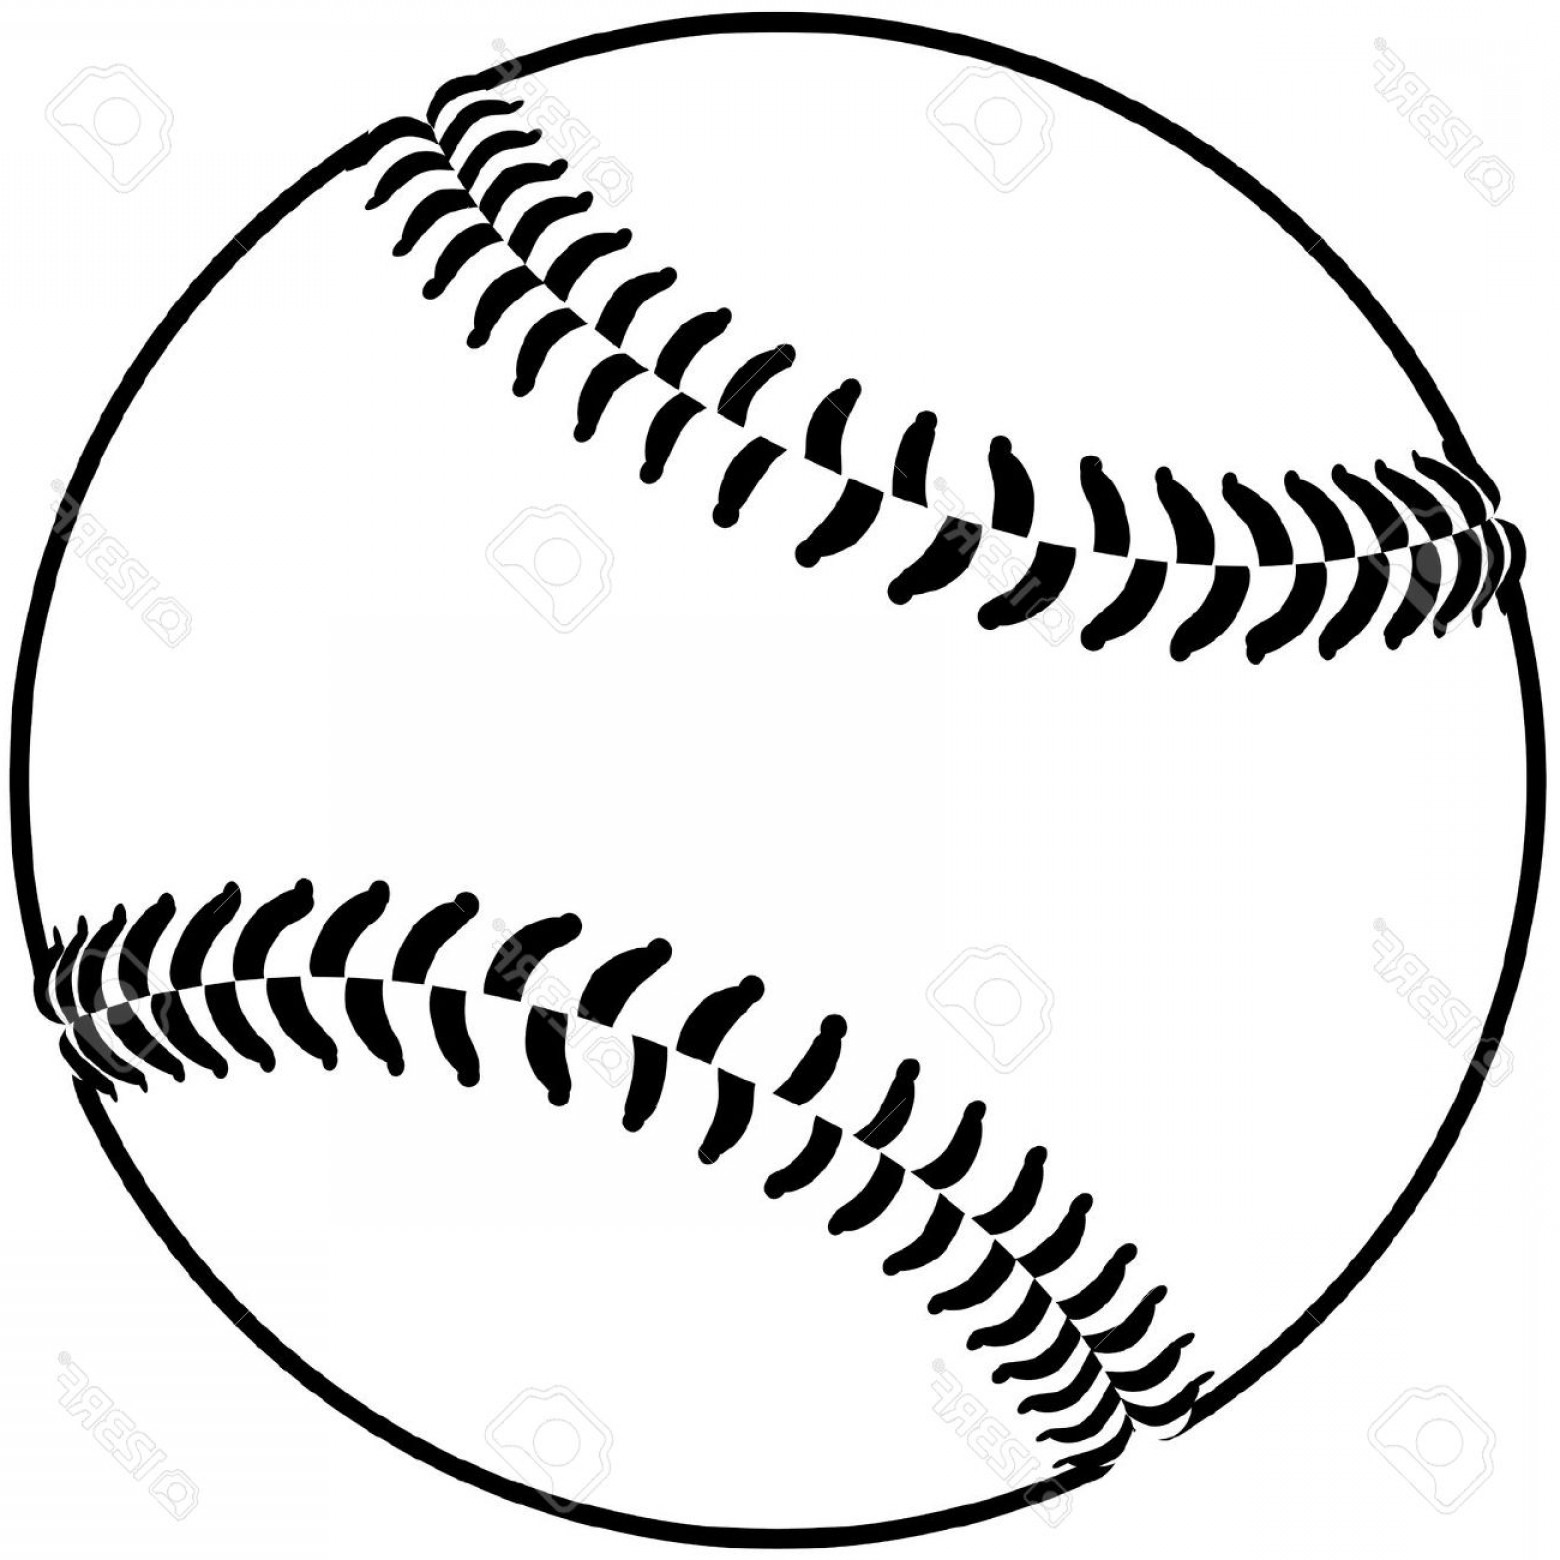 Softball Laces Vector Art B W: Softball Clipart Black And White Drawn Baseball